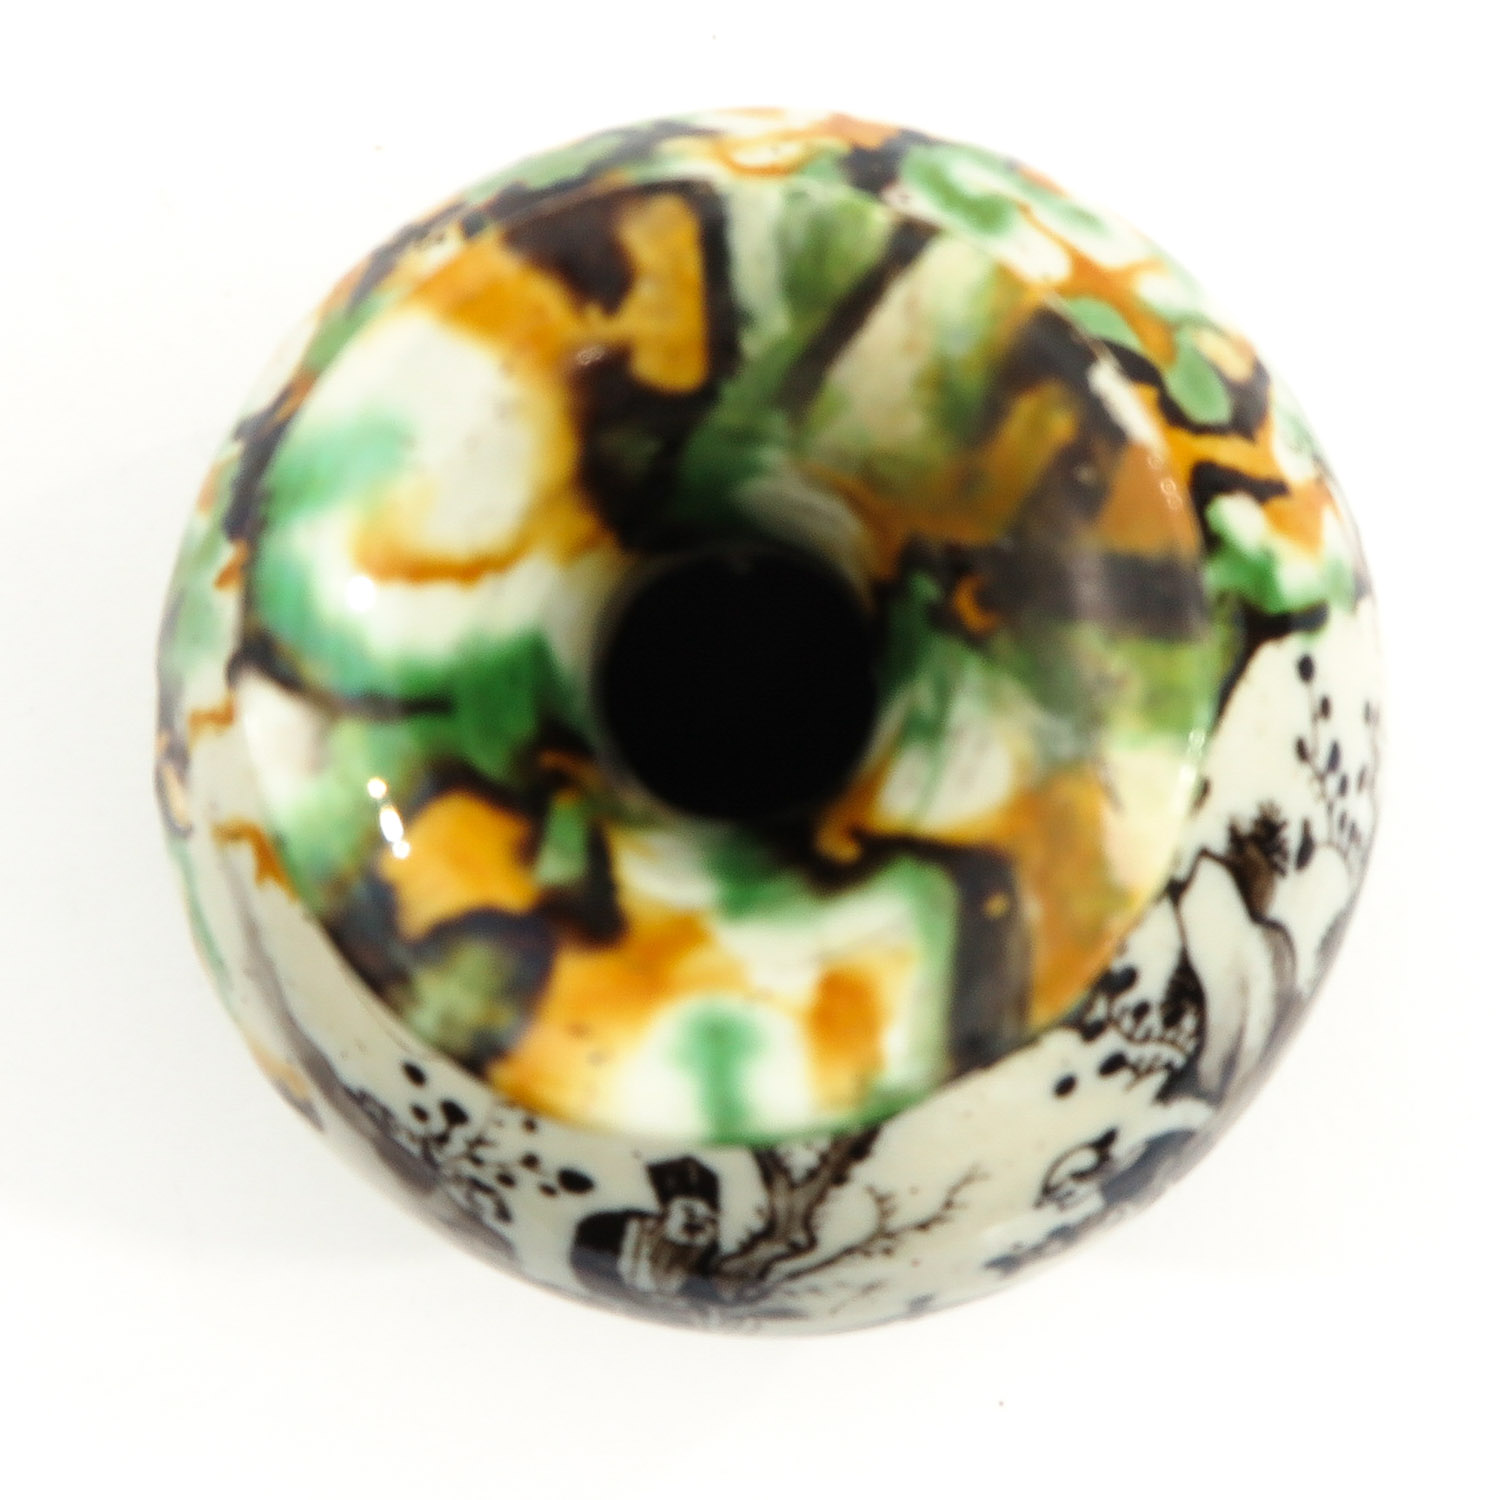 A Spinich and Egg Decor Vase - Image 5 of 9